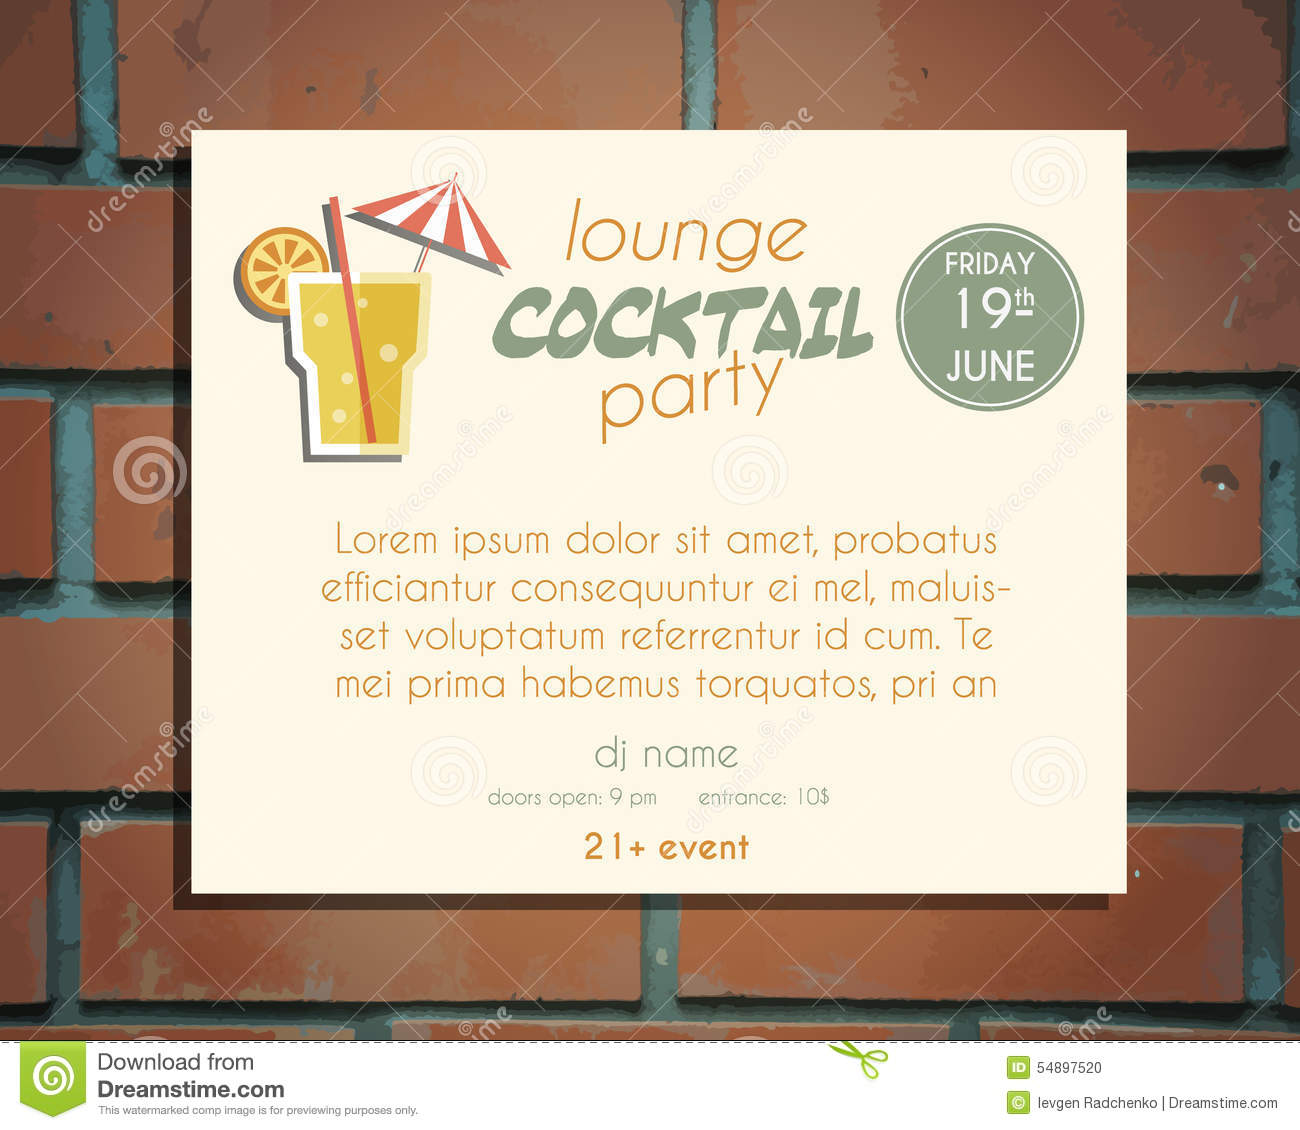 Lounge Cocktail Party Poster Invitation Template Vector – Free Cocktail Party Invitation Templates